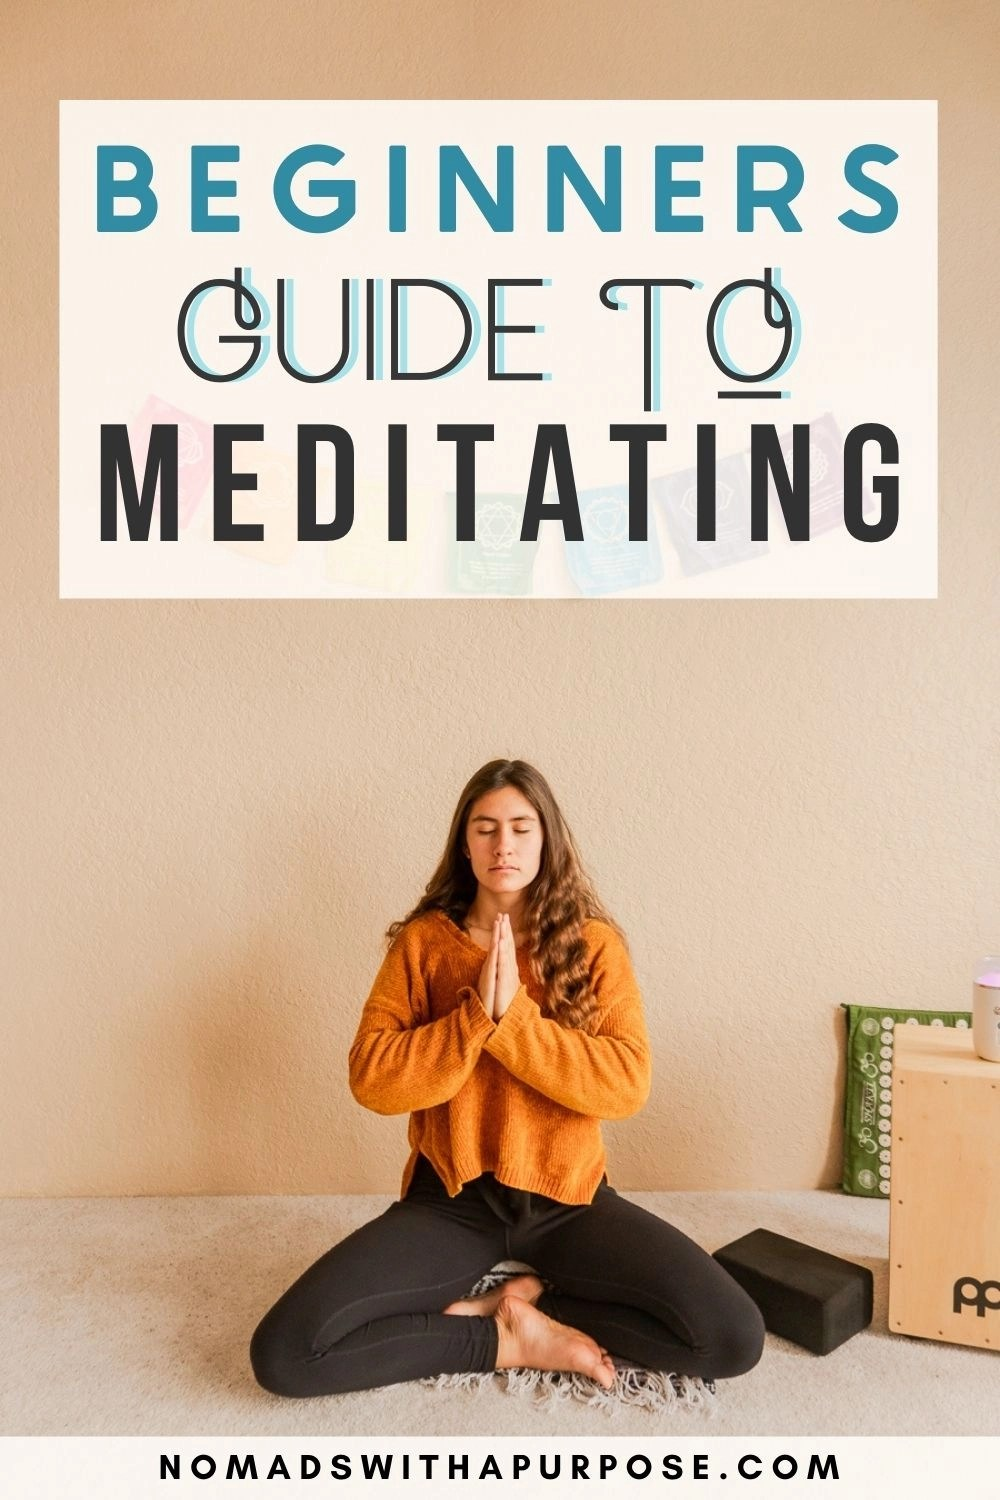 Beginners Guide To Meditating